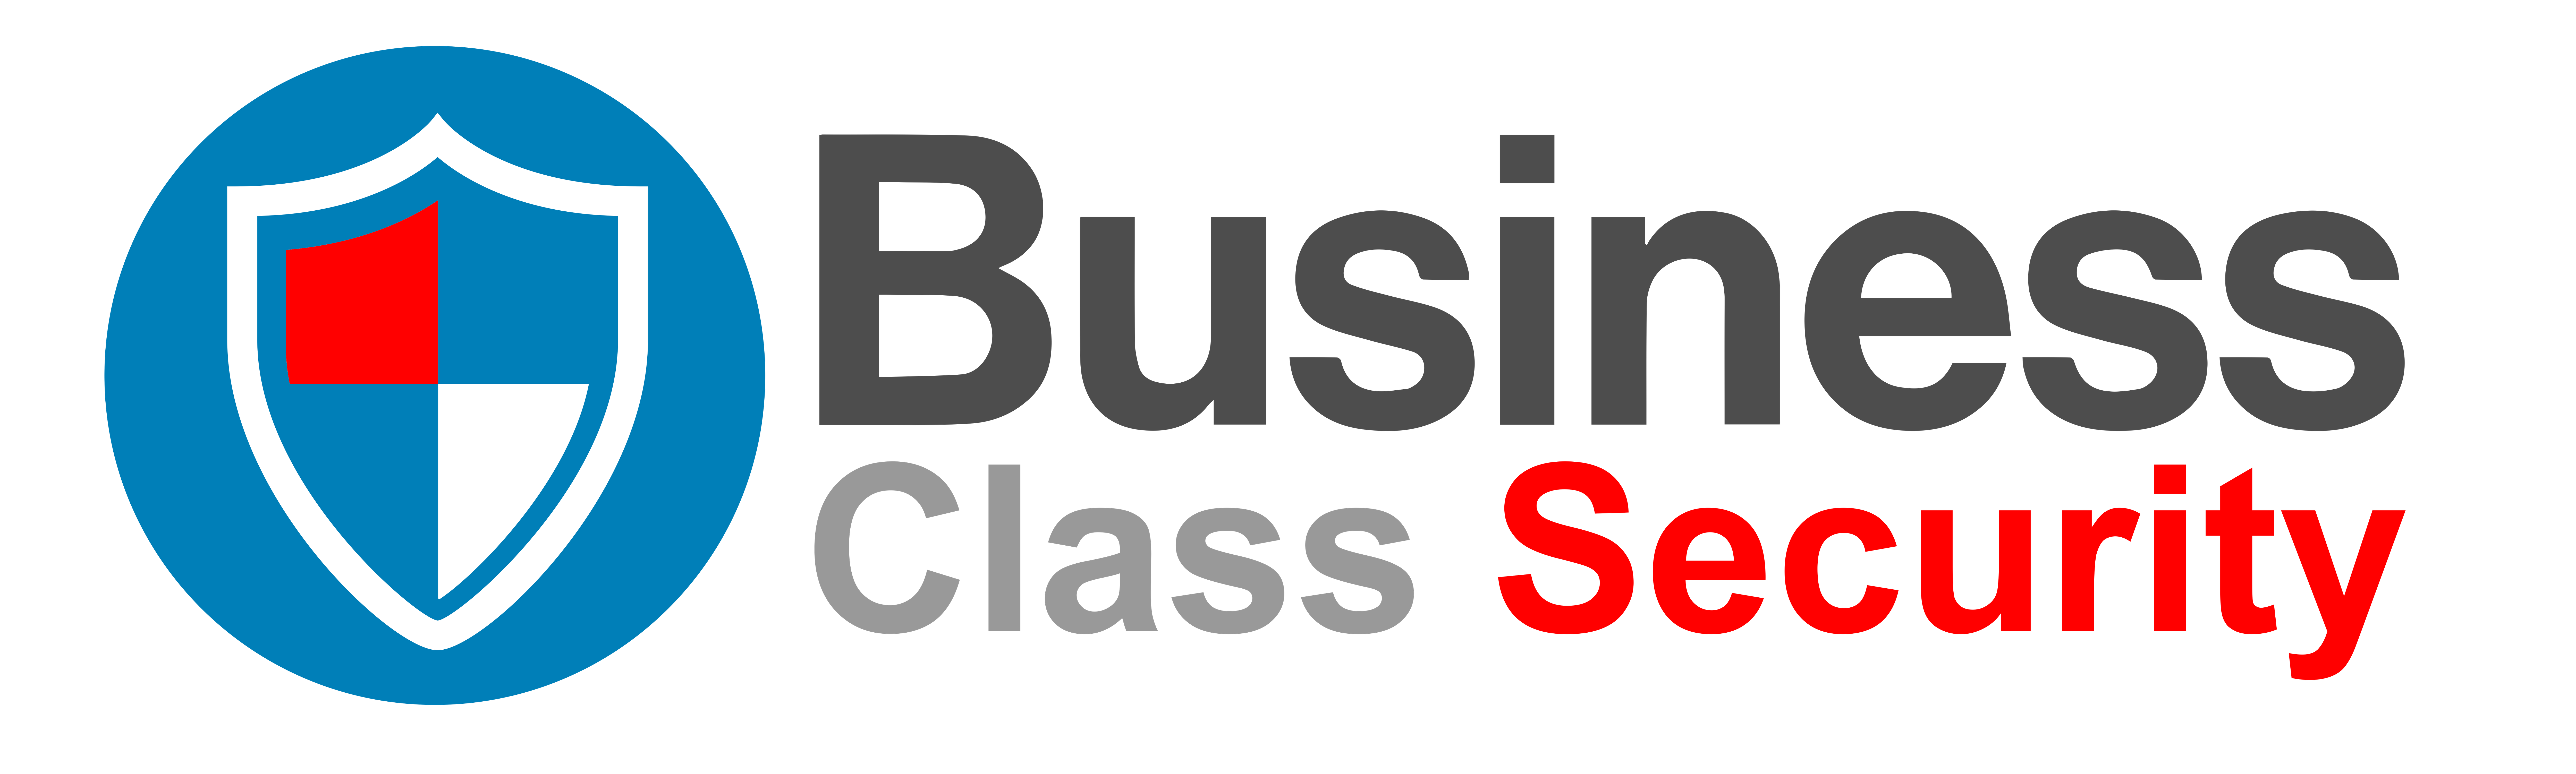 Business_Class_Security-Horizontal-Blue-White-RED-V5